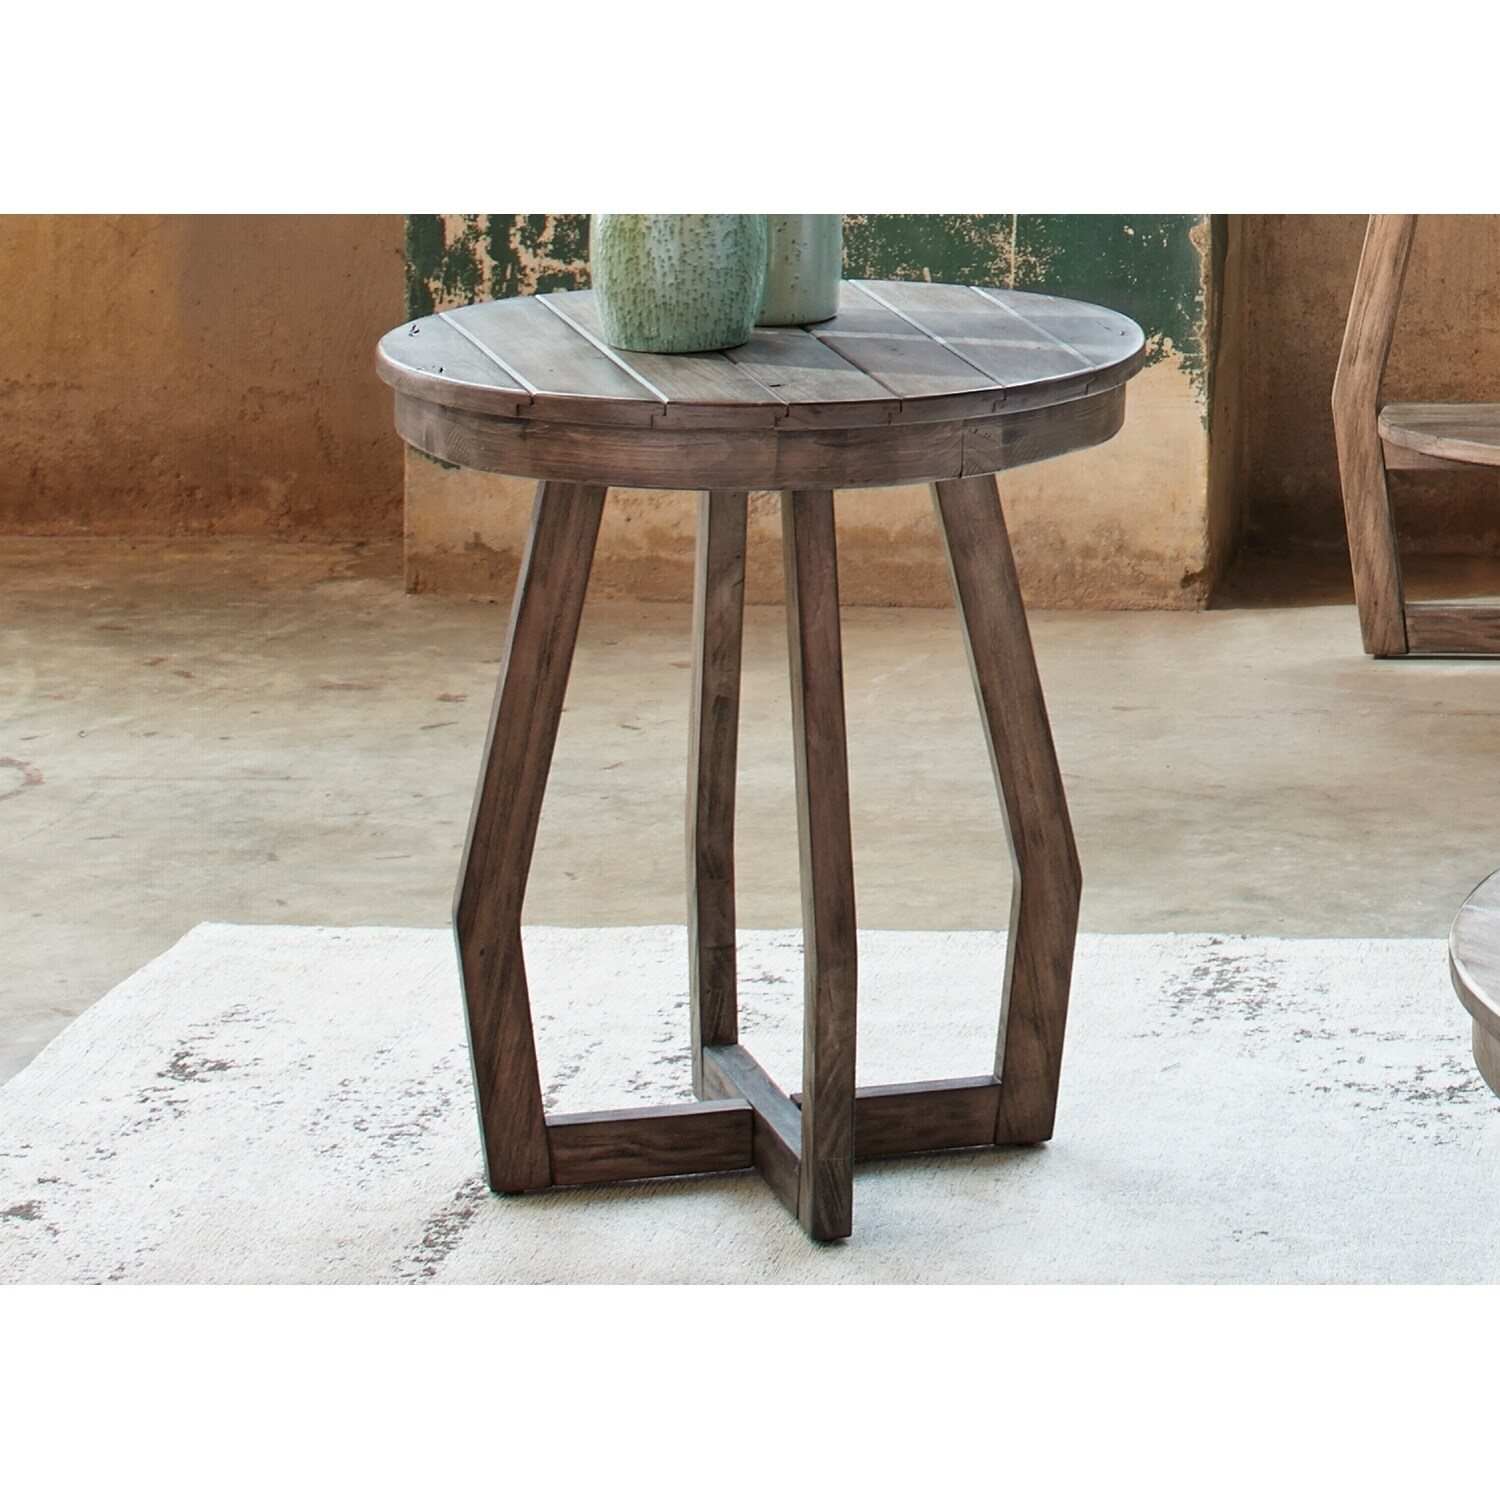 gray chair side table hydro massage pine canopy redwood wash round ebay